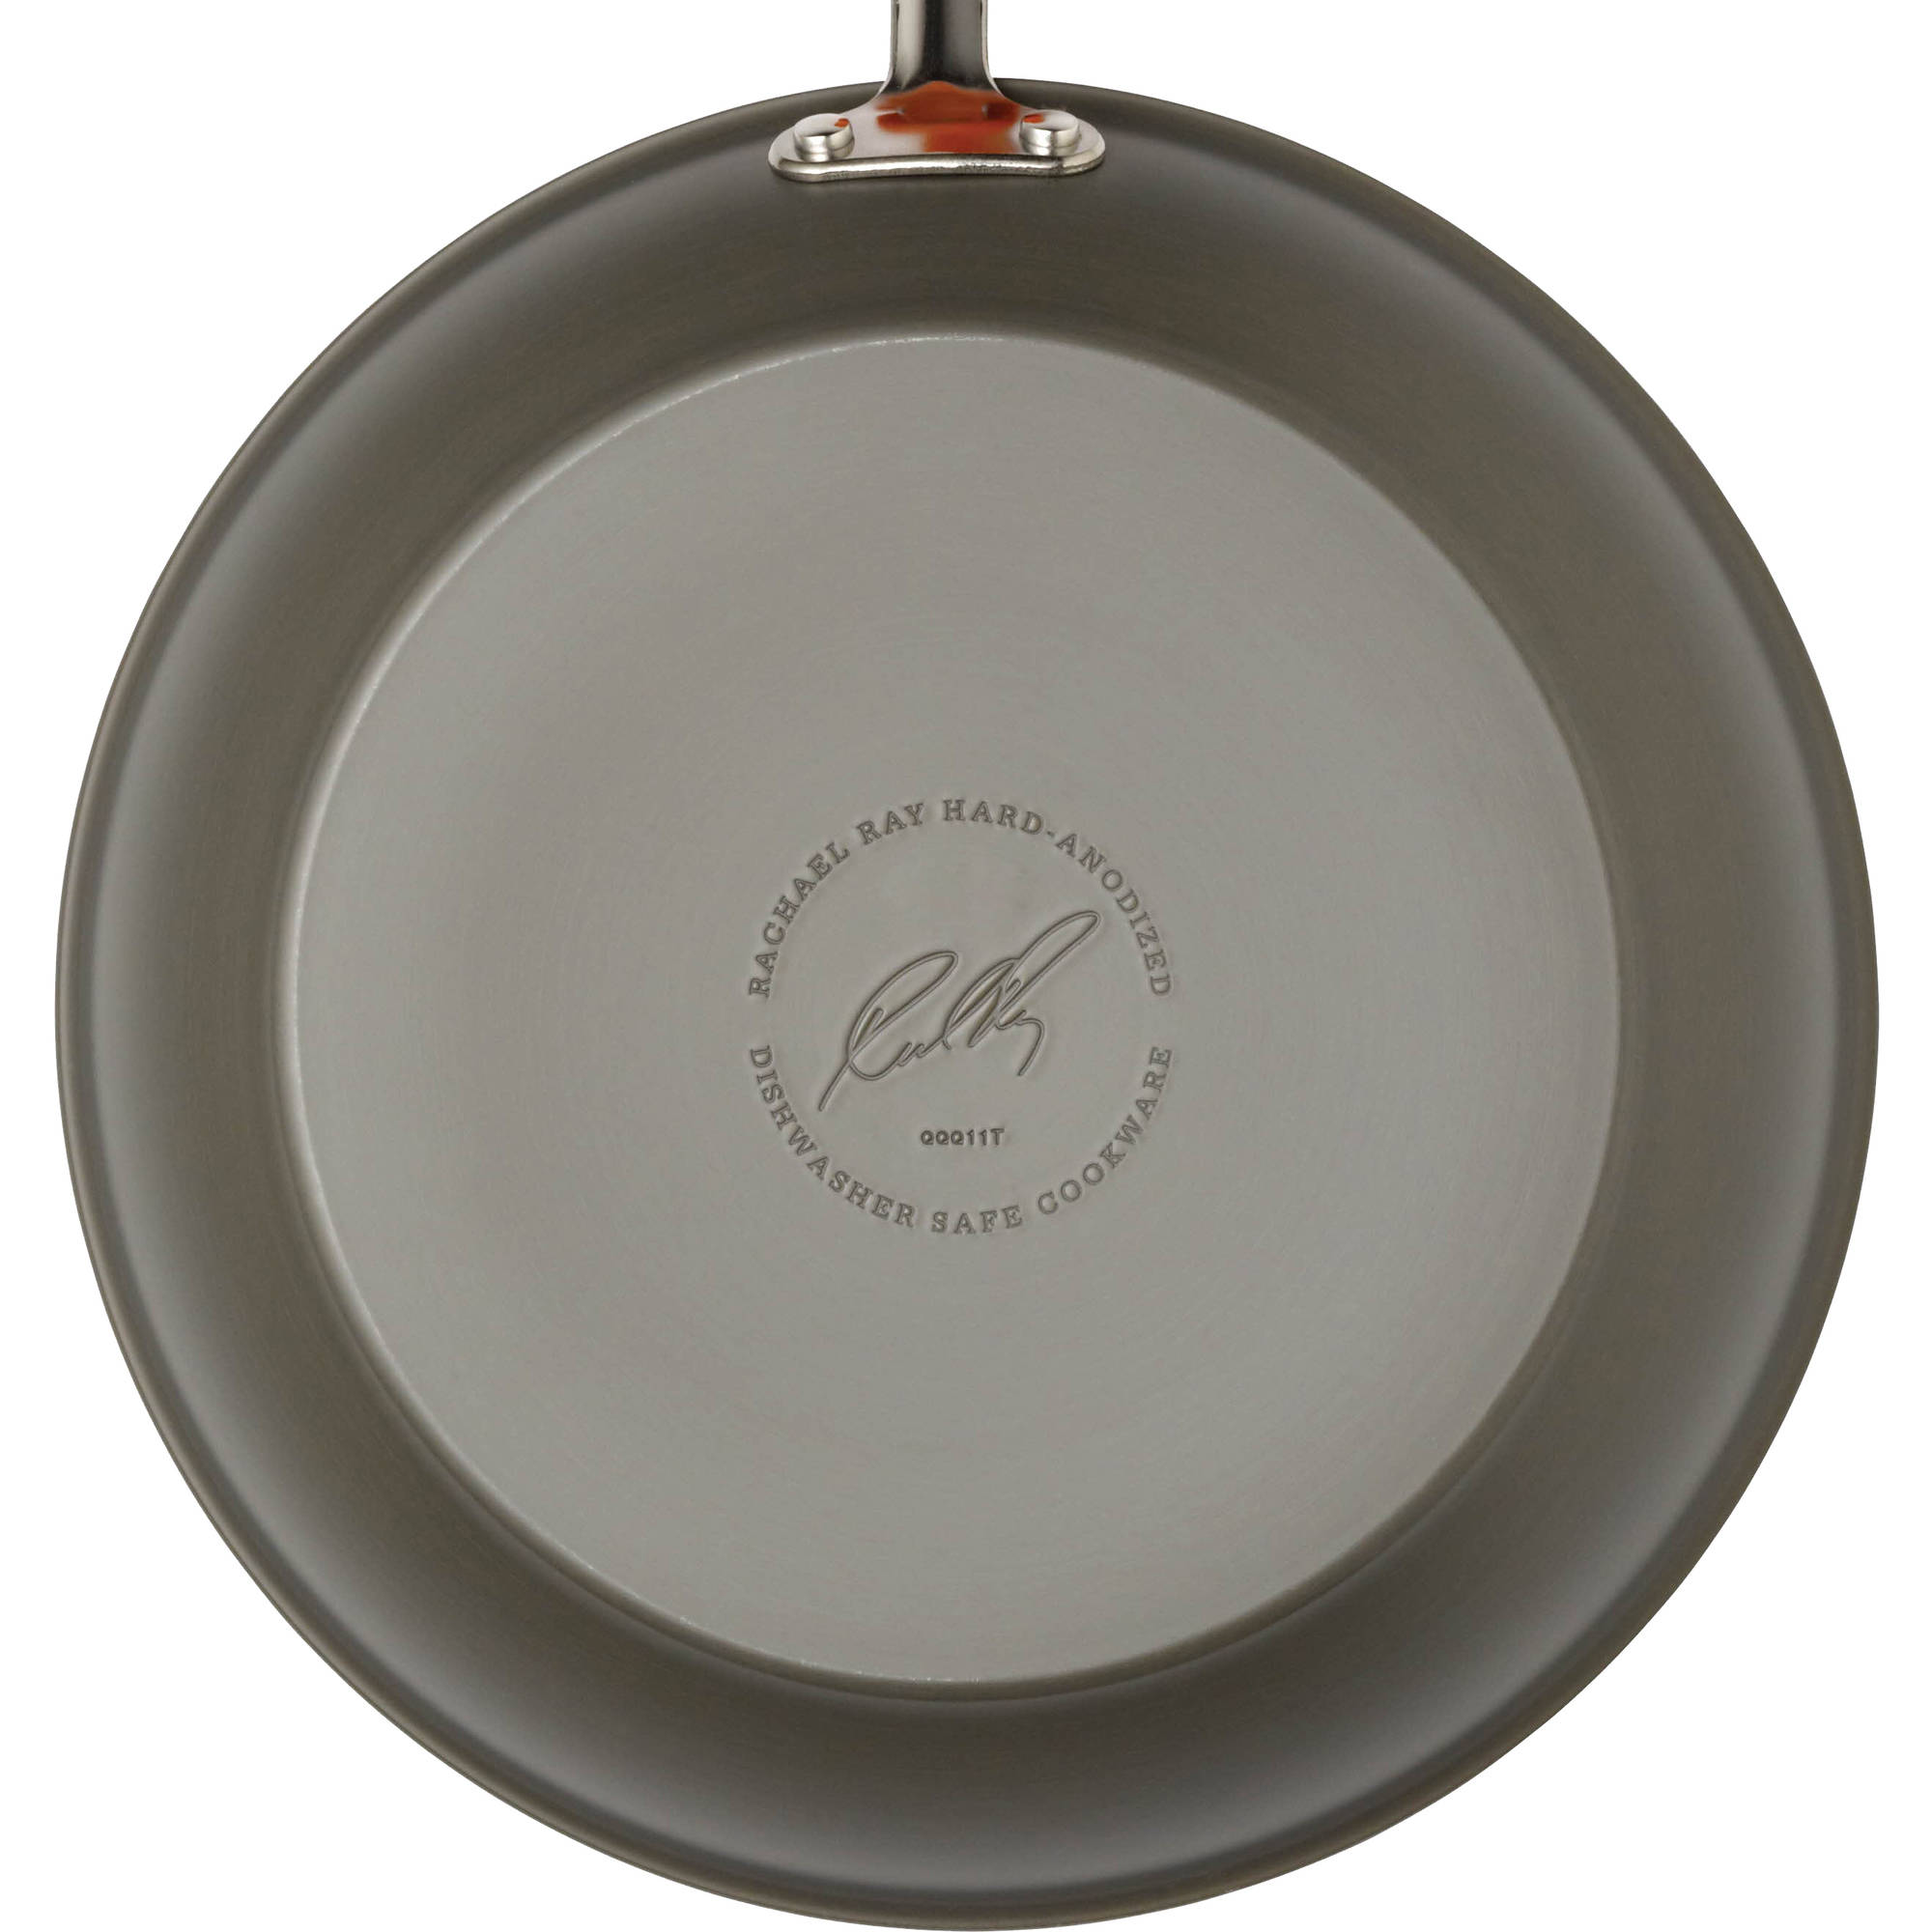 Rachael Ray Hard-Anodized Nonstick 12-1/2-Inch Skillet, Gray with ...